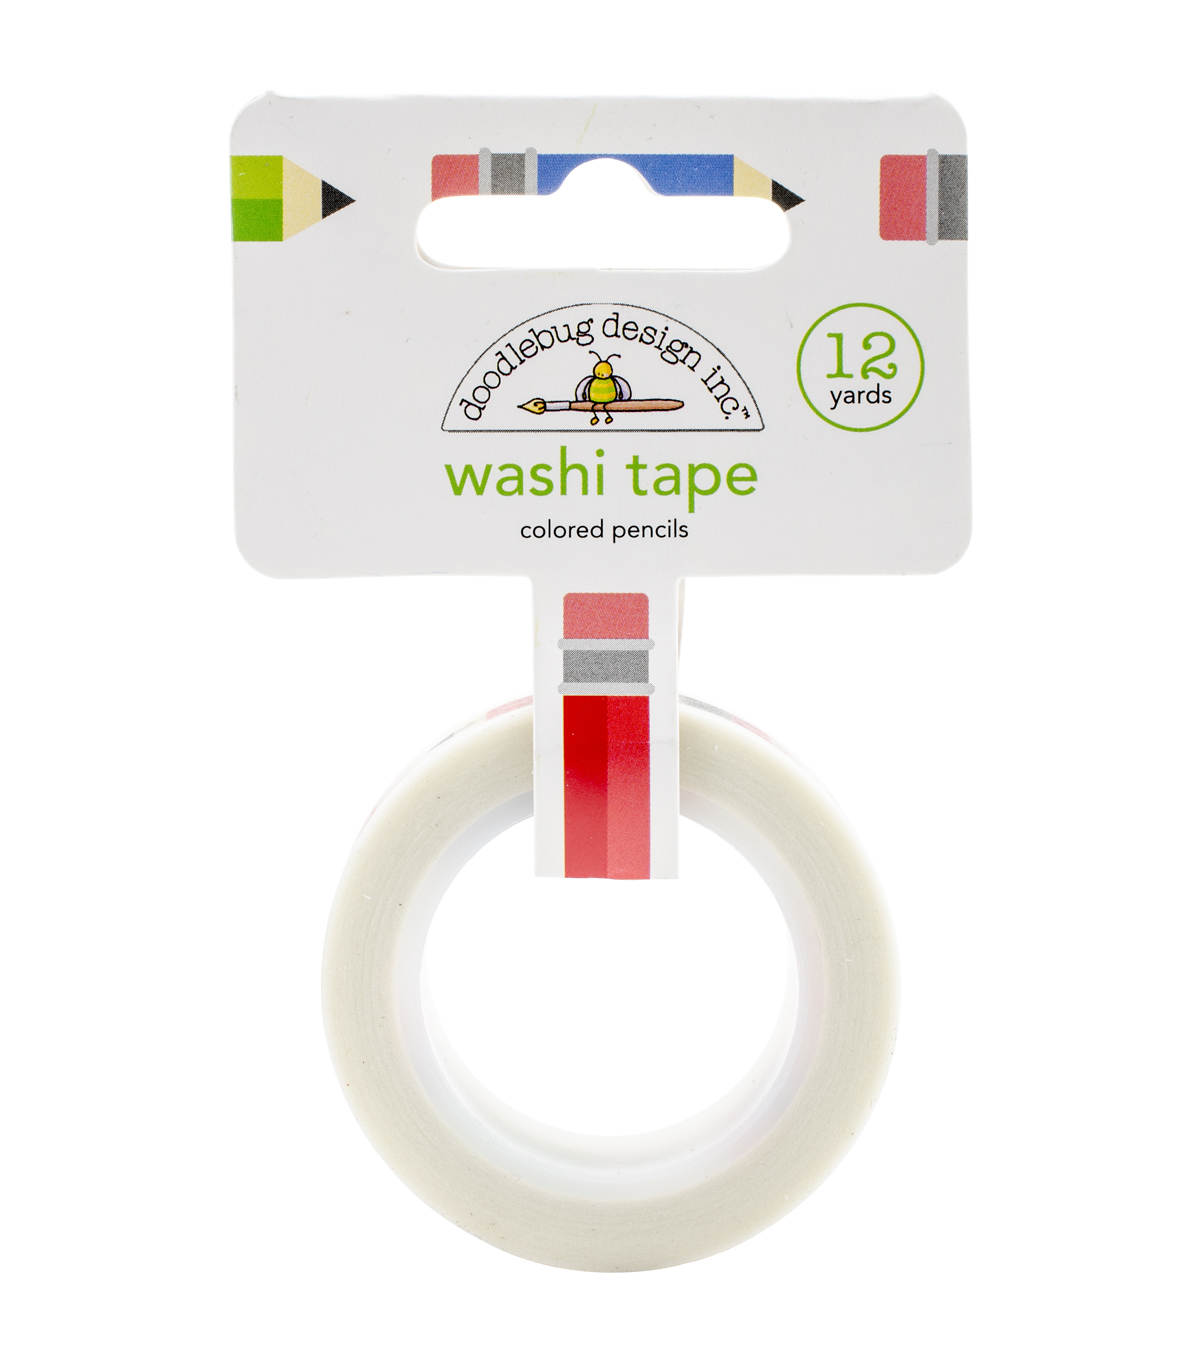 Colr Pencl-school Washi Tape